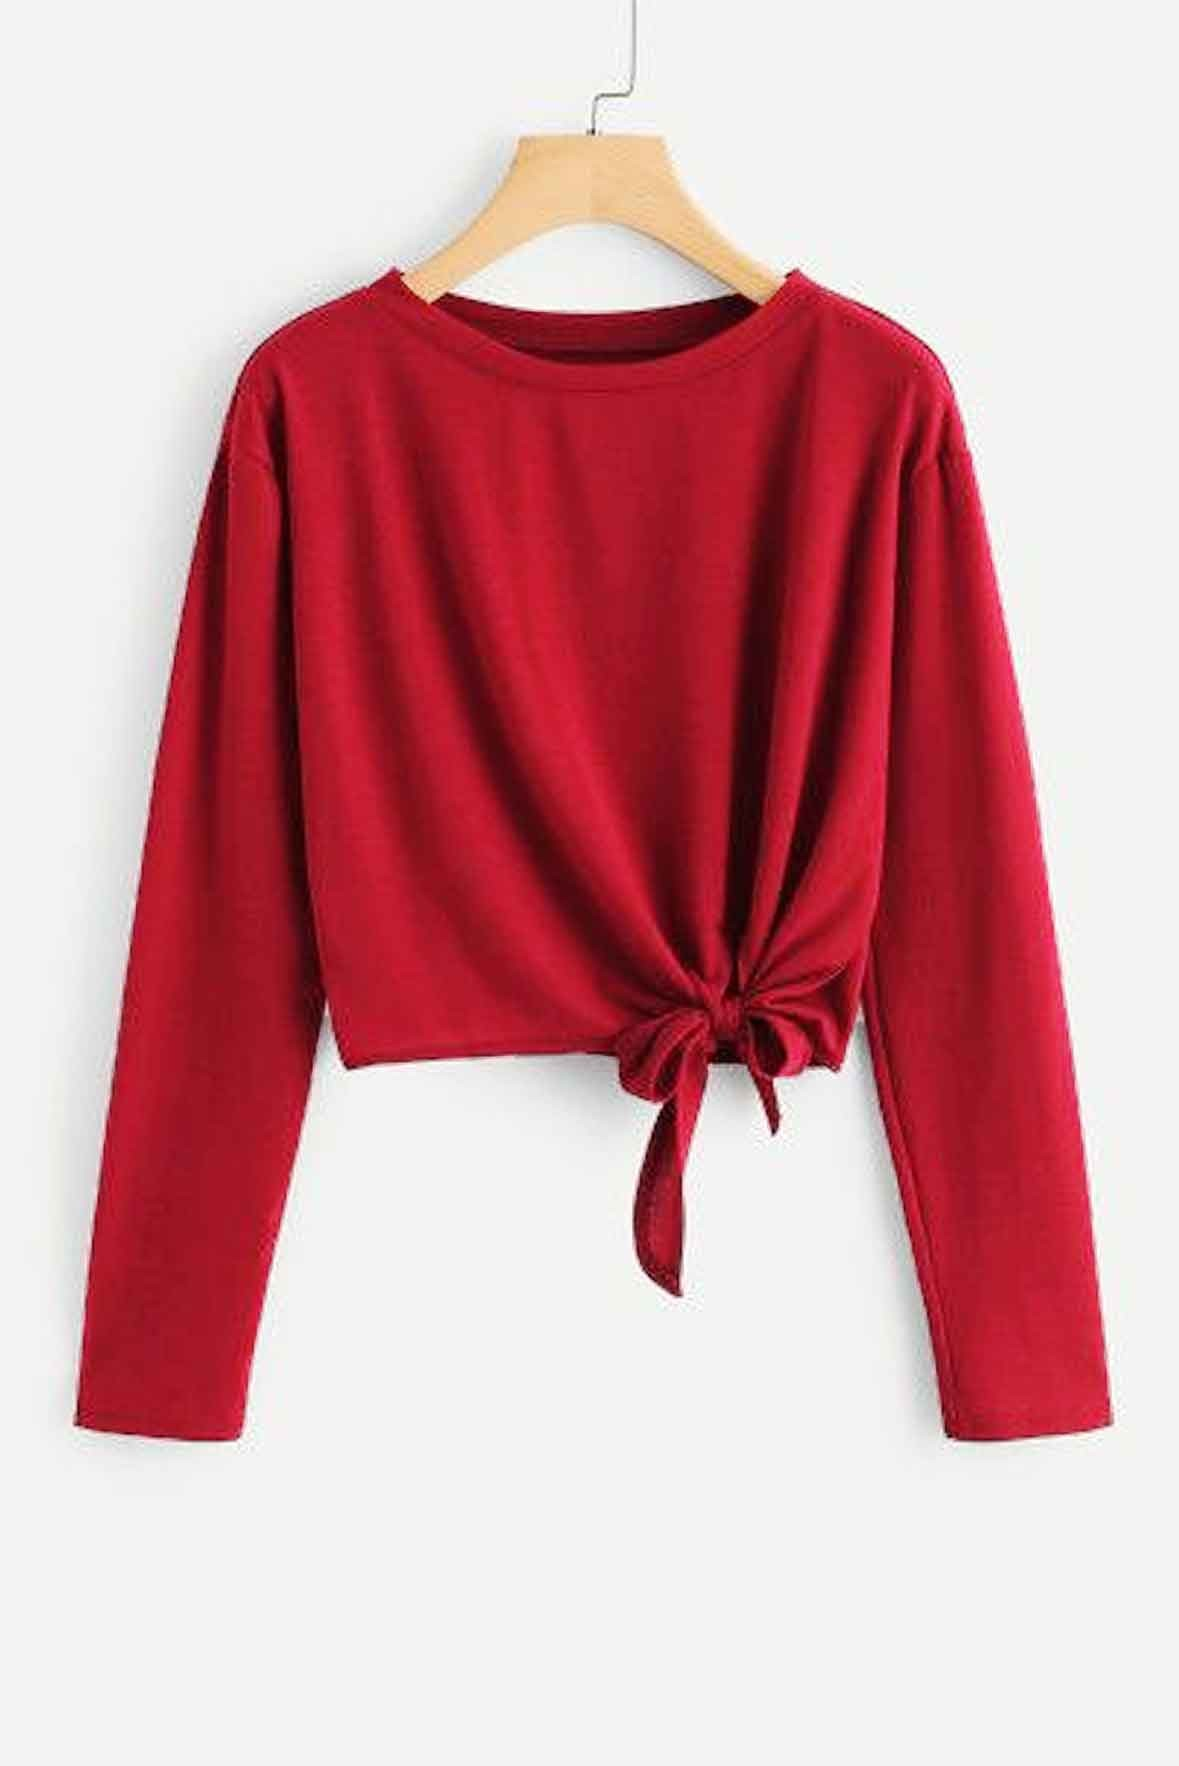 Knot Side Crop Top Red